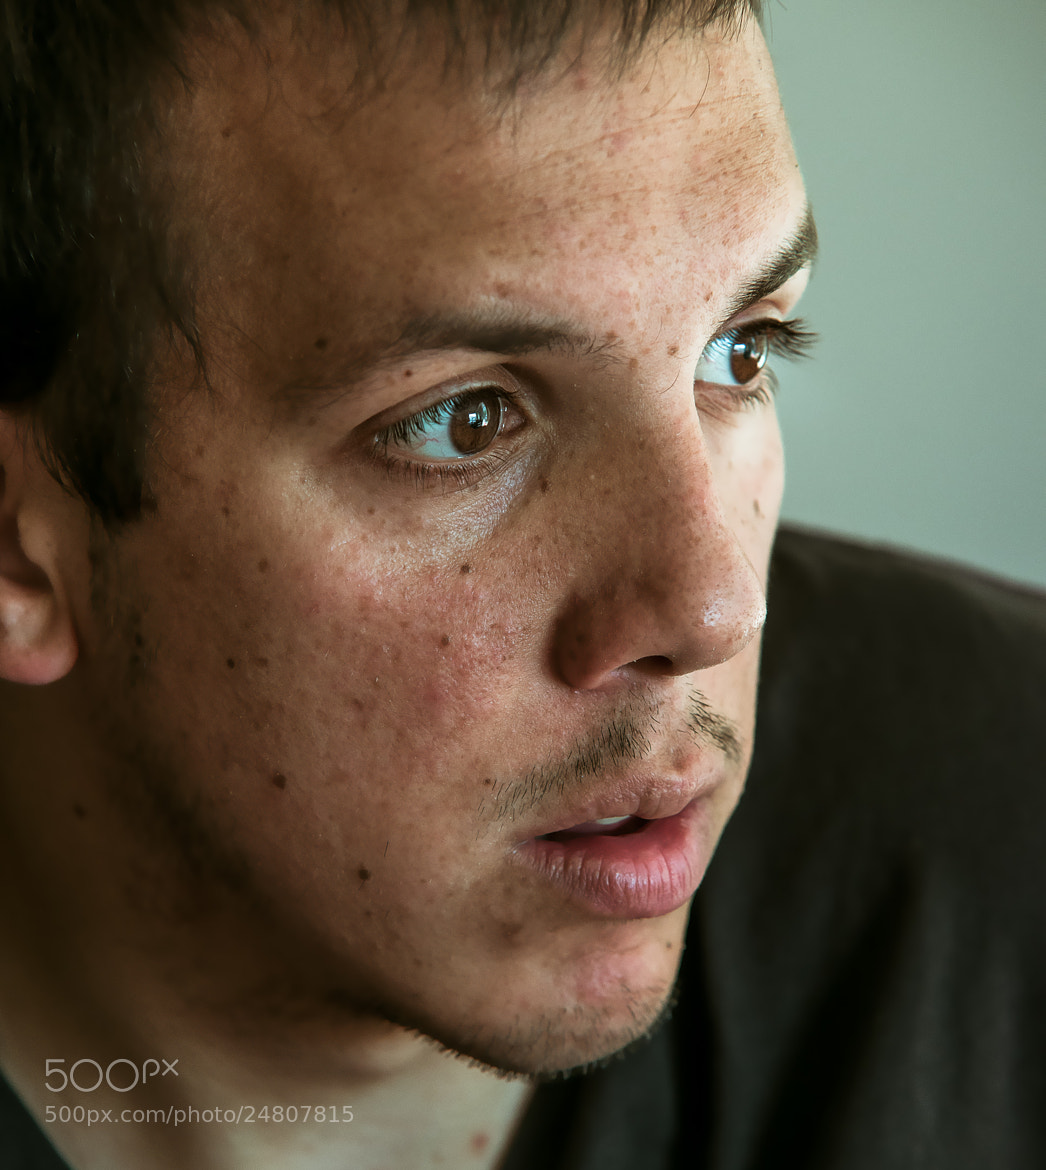 Photograph Patrick by Rodrigo Fernandez on 500px